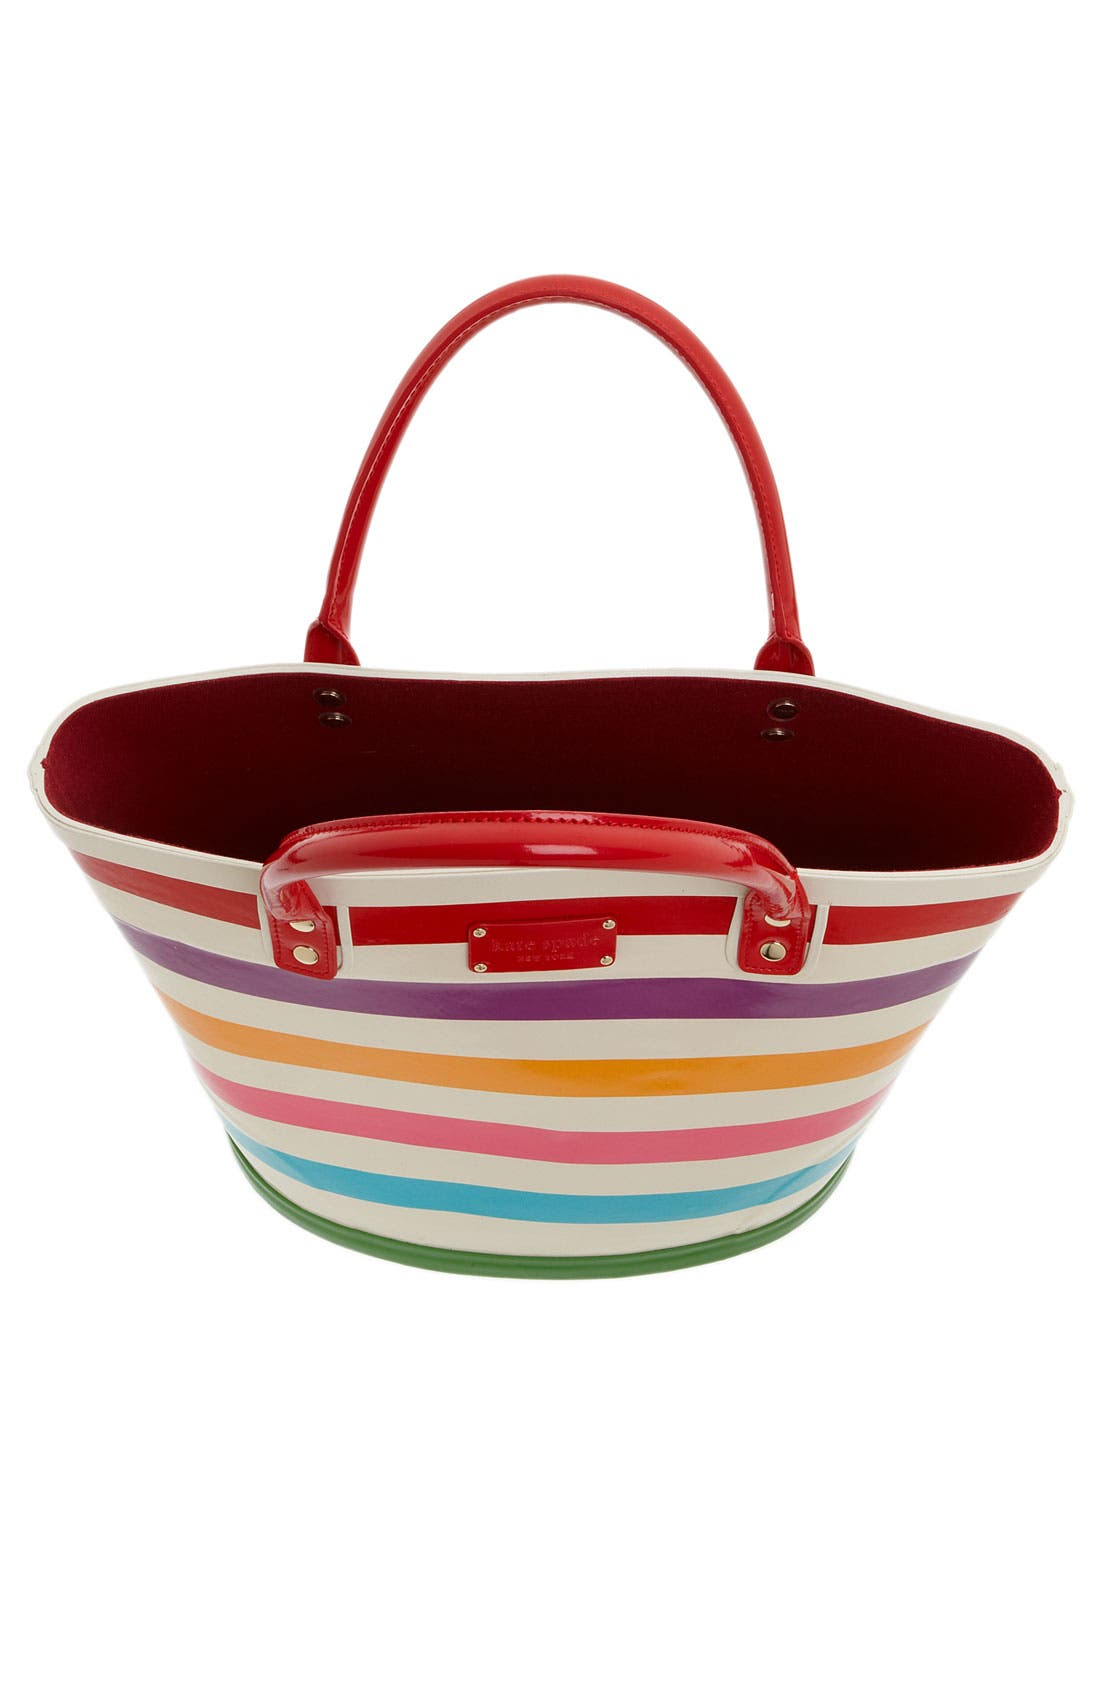 Alternate Image 3  - kate spade 'wellie magee' rubber tote